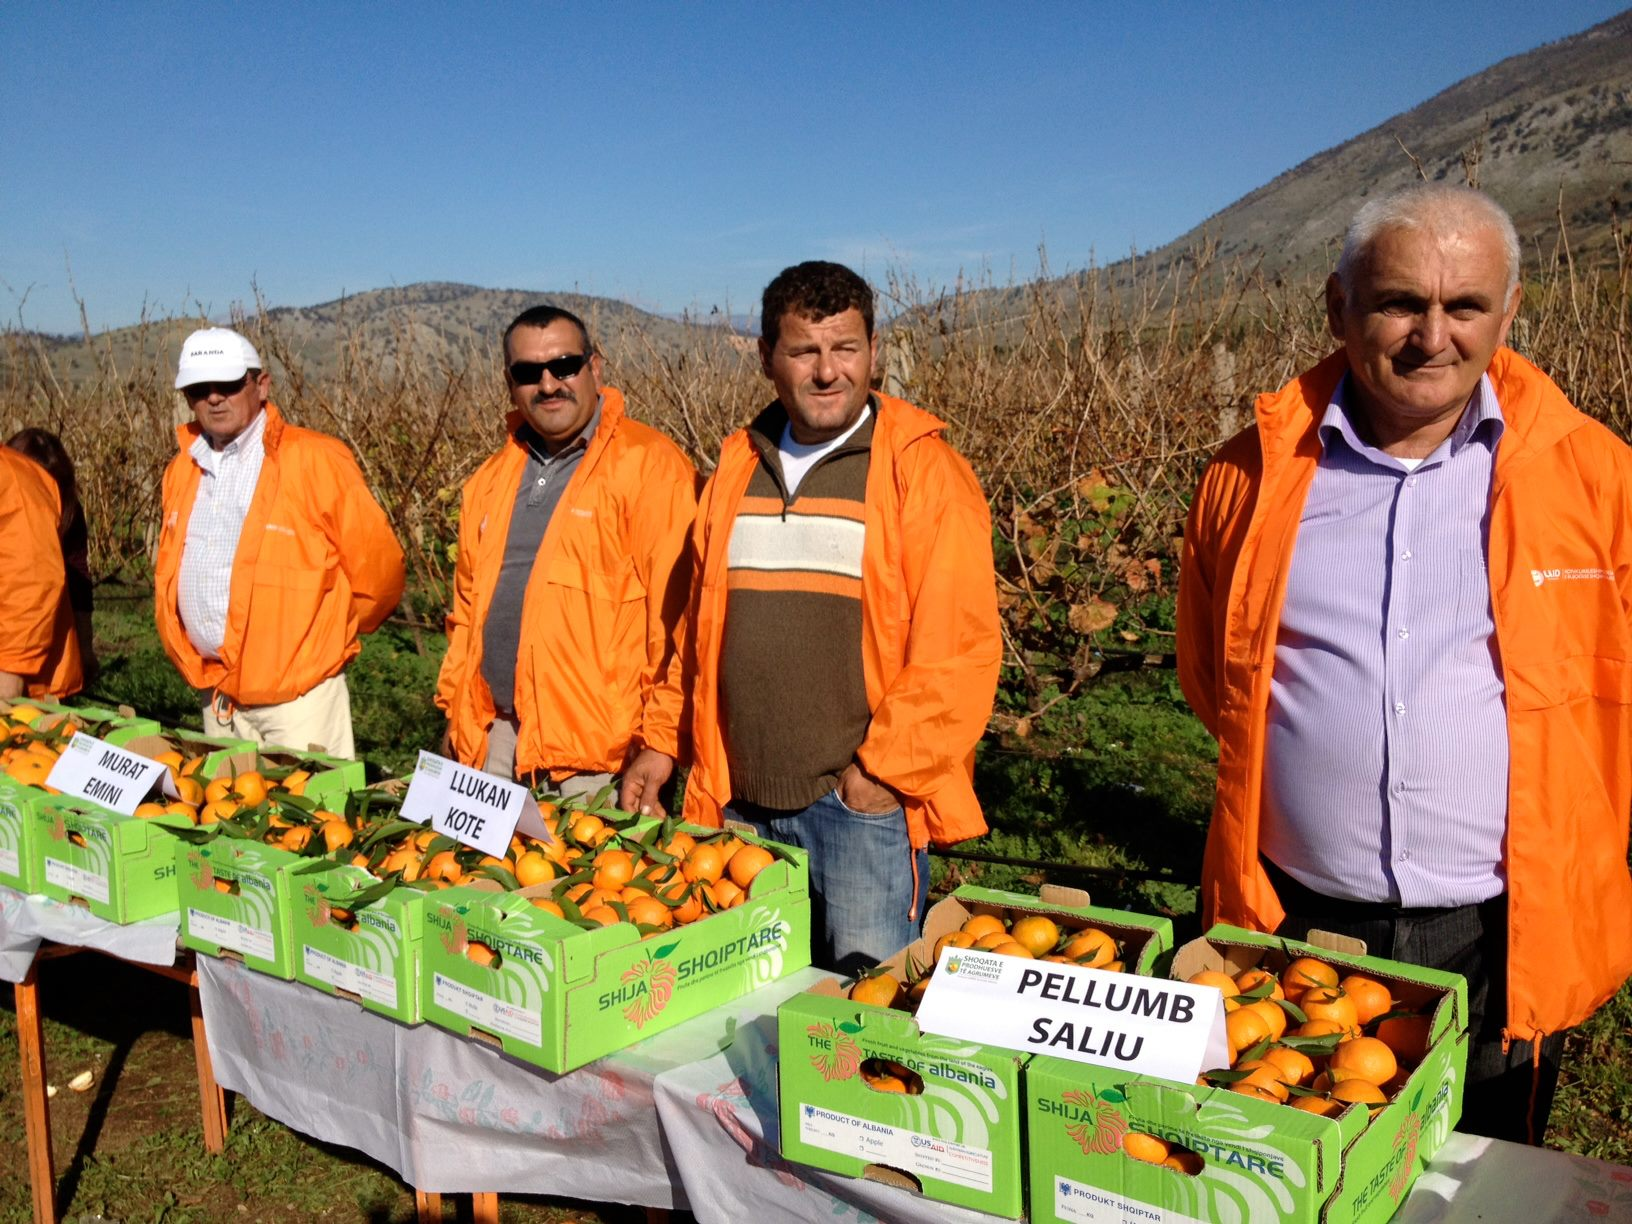 Men in orange coats stand behind displays of tangerines